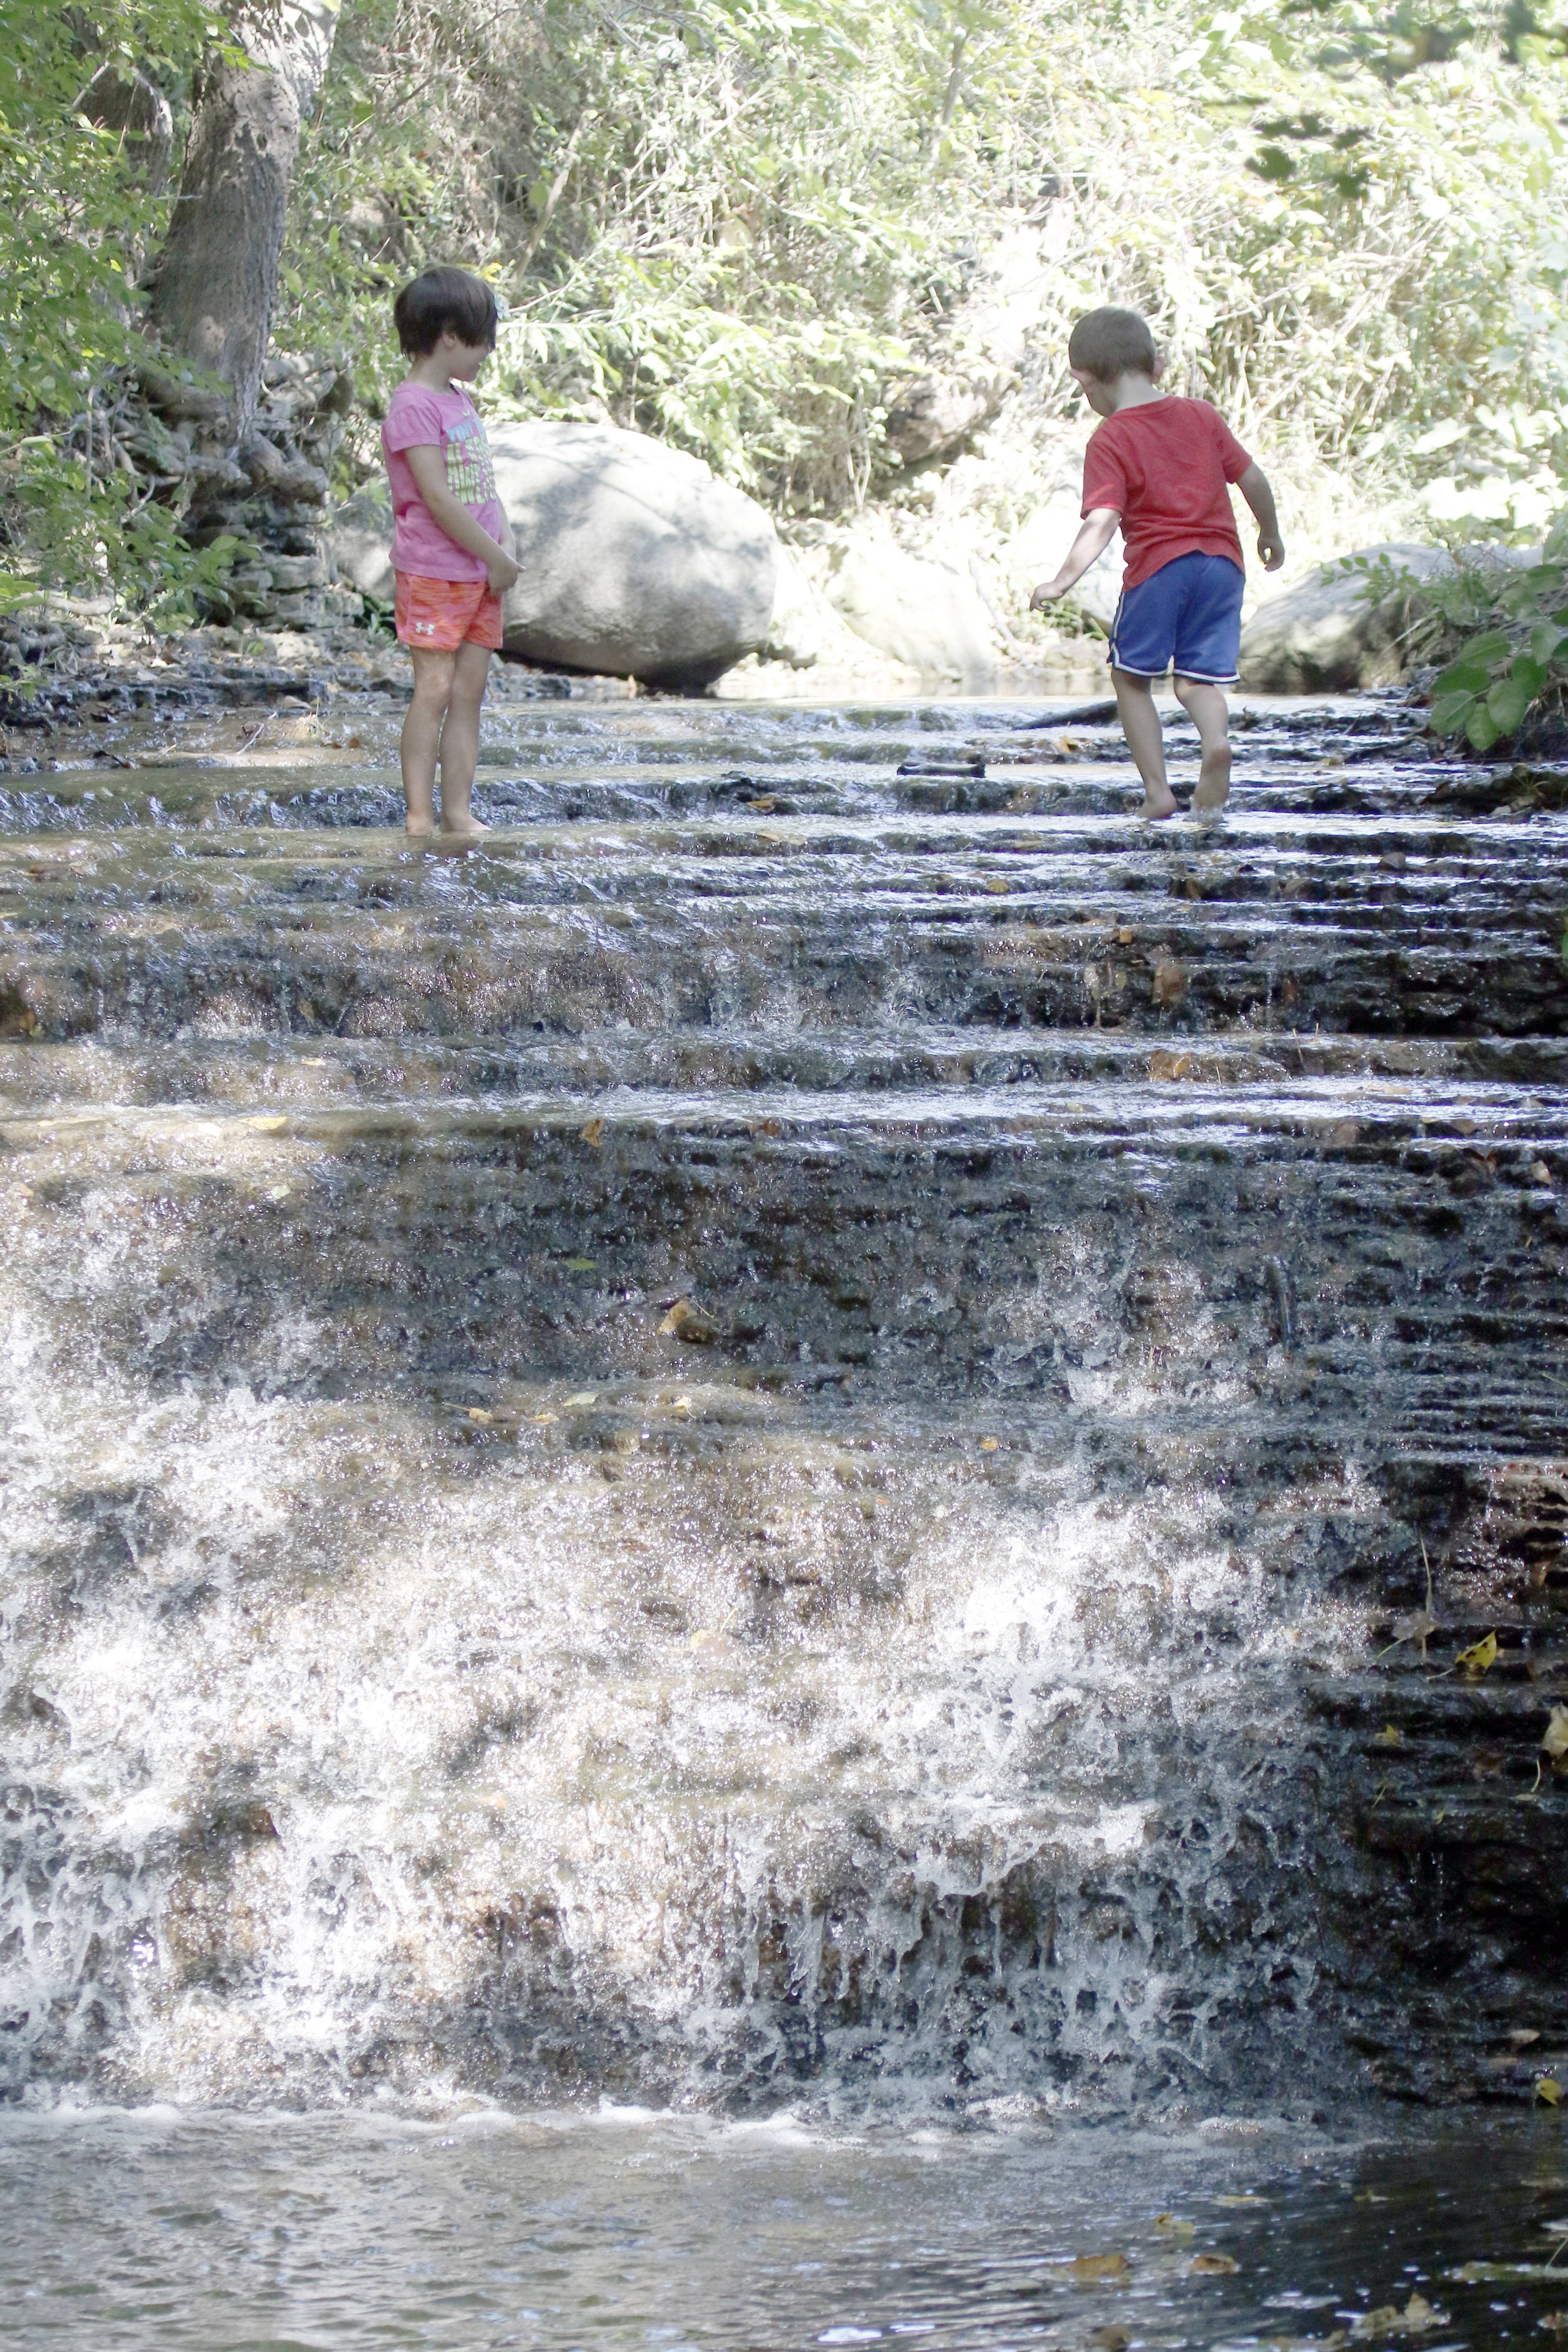 Haddie Hunt and Jacob Kopetsky, both 4 and from West Dundee, walk across the top of a waterfall Thursday at Jon J. Duerr Forest Preserve near South Elgin. To see the waterfall, ride south on the River Bend Bike Trail.